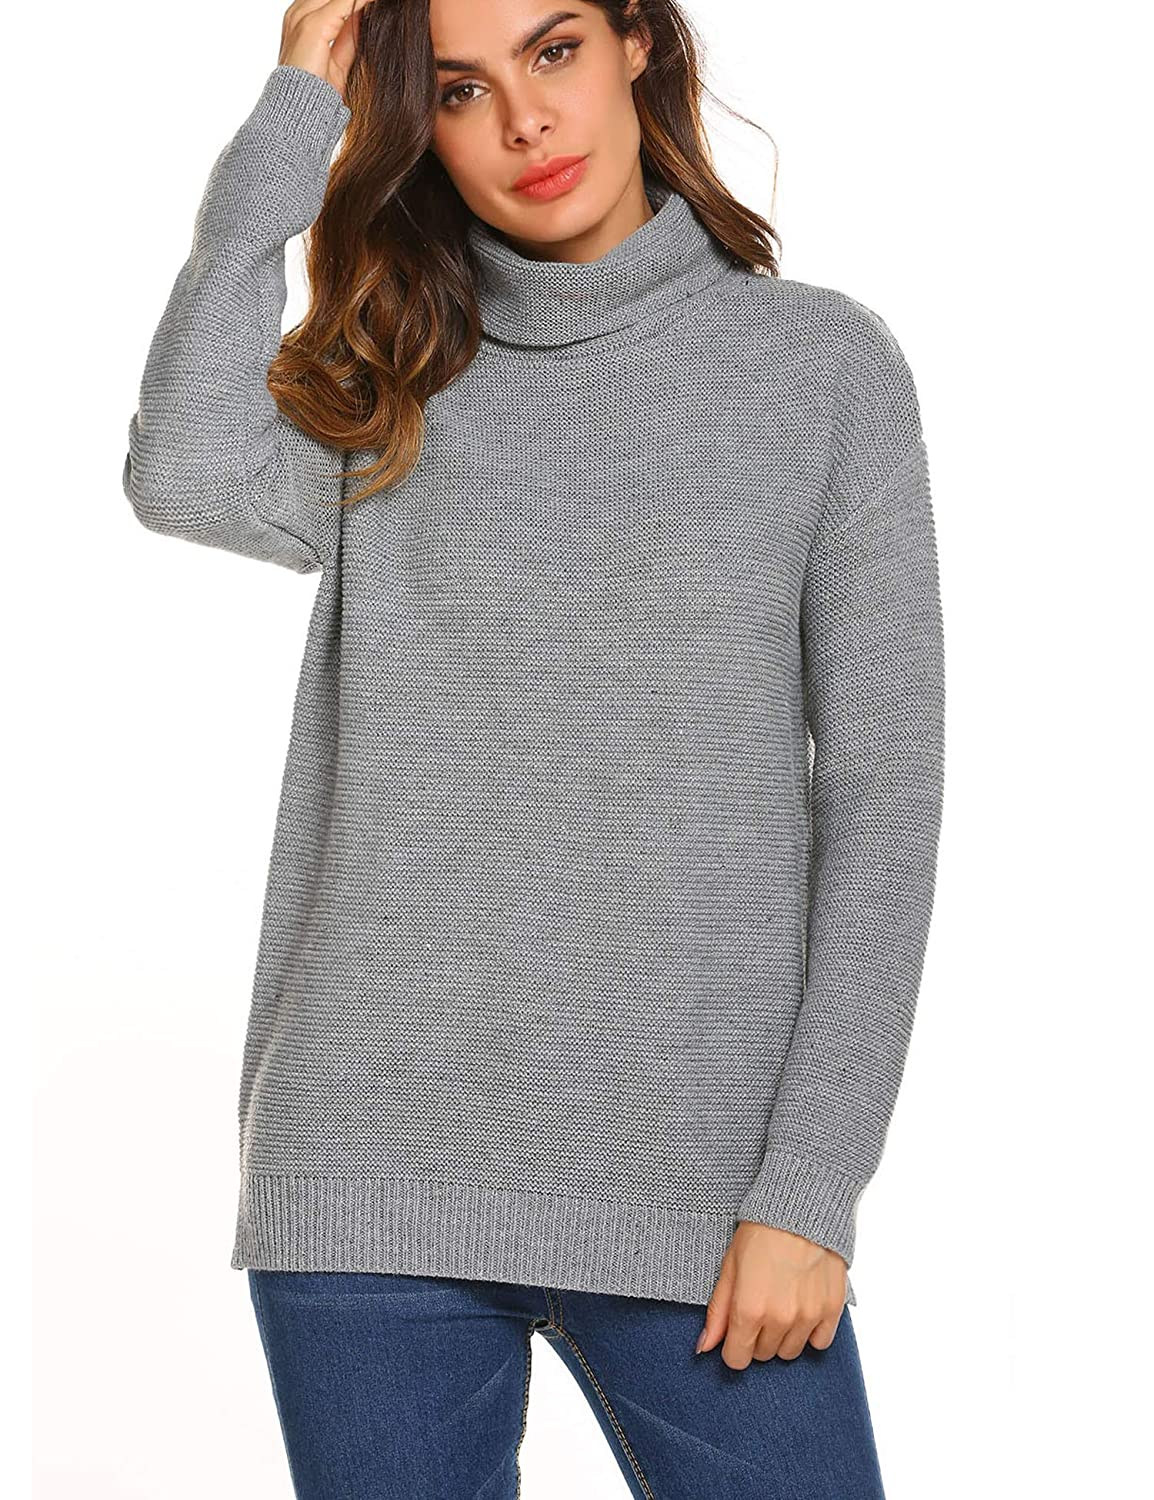 b995d0c2267c2 Teewanna Women s Turtle Cowl Neck Sweater Long Sleeve Loose Knit Pullover  Jumper at Amazon Women s Clothing store